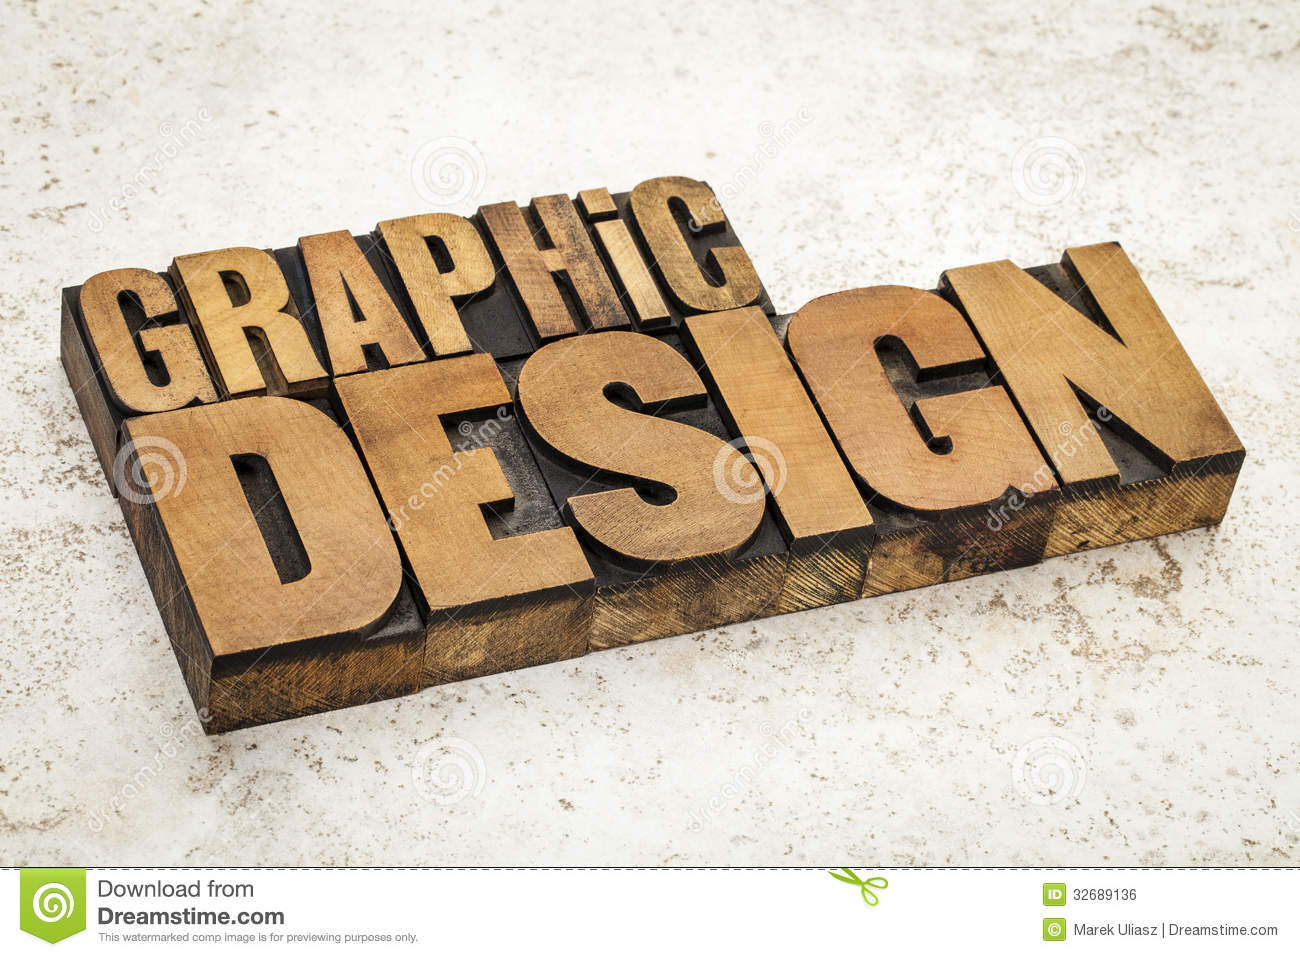 Graphic Design In Wood Type Royalty Free Stock Image - Image: 32689136